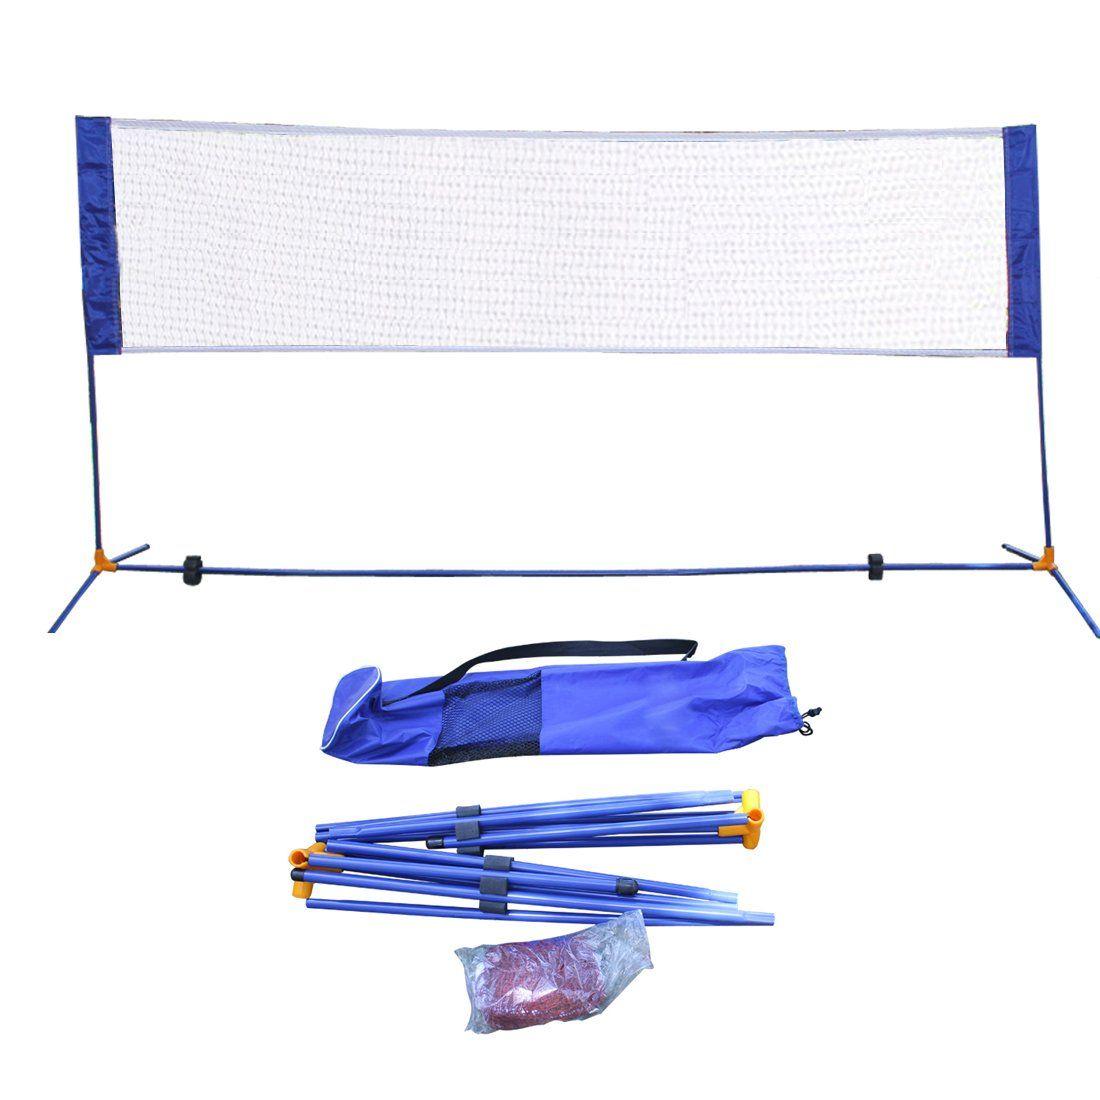 Portable Height Adjustable Badminton Tennis Net Set Equipment With Poles Stand And Carry Bag 3m 10ft For Kids Outdoor Spor In 2020 With Images Badminton Nets Badminton Tennis Nets